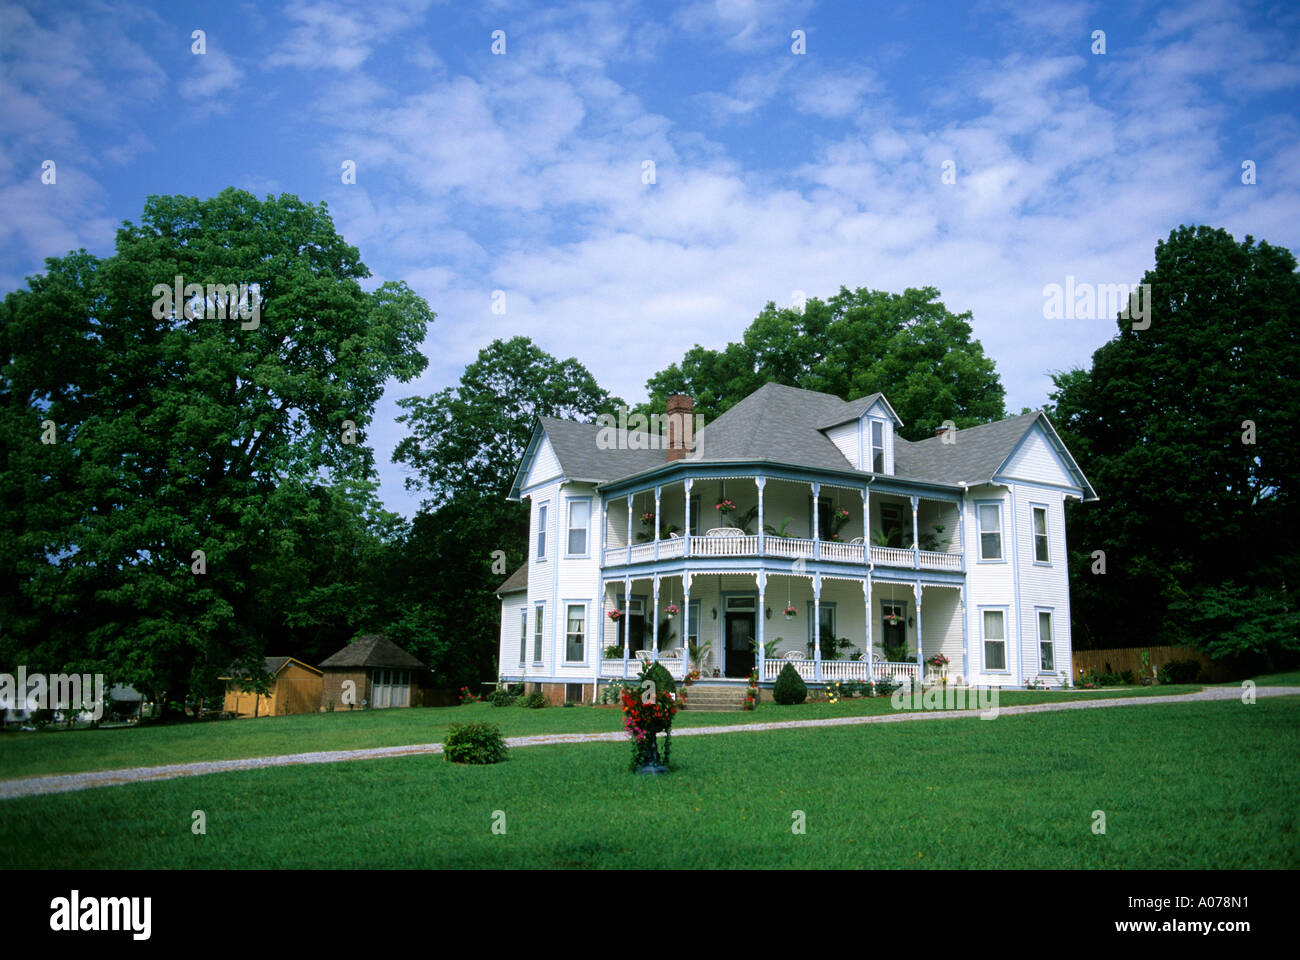 A victorian house in Winchester, Tennessee. Circa 1900. - Stock Image